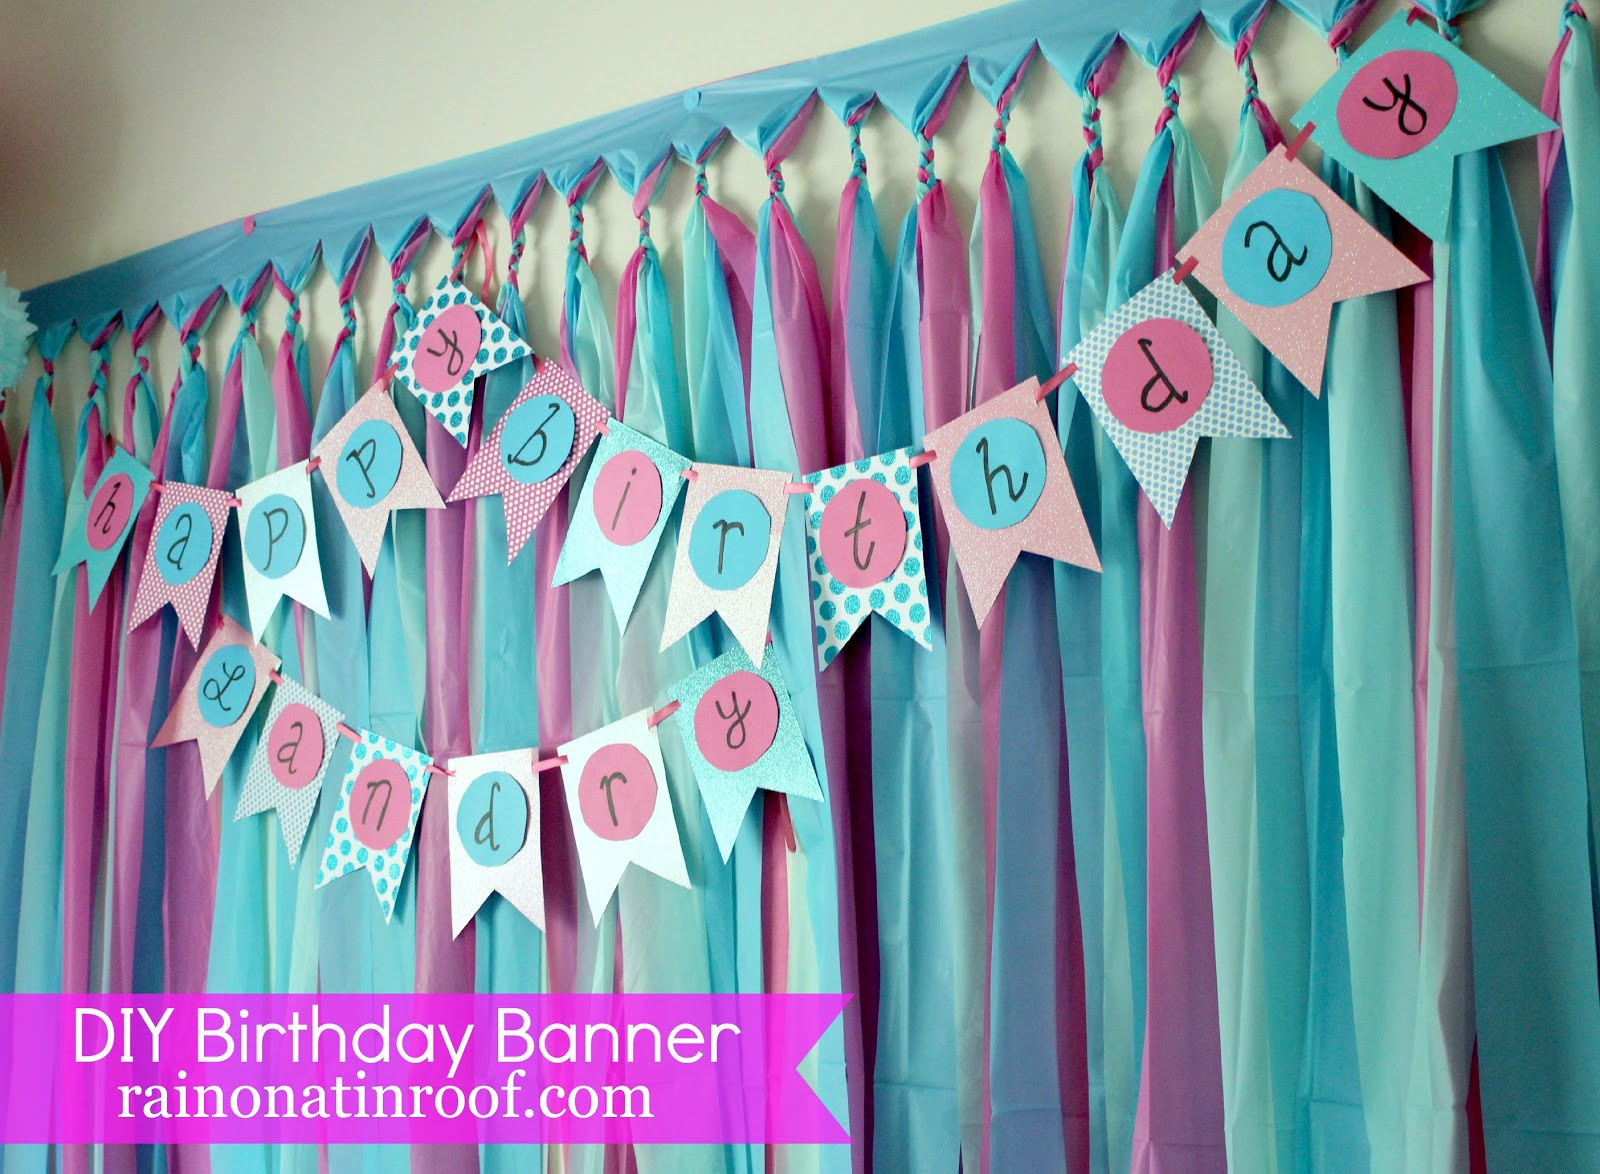 Best ideas about DIY Birthday Decorations . Save or Pin Easiest Ever DIY Birthday Banner Part 2 Rain on a Tin Roof Now.